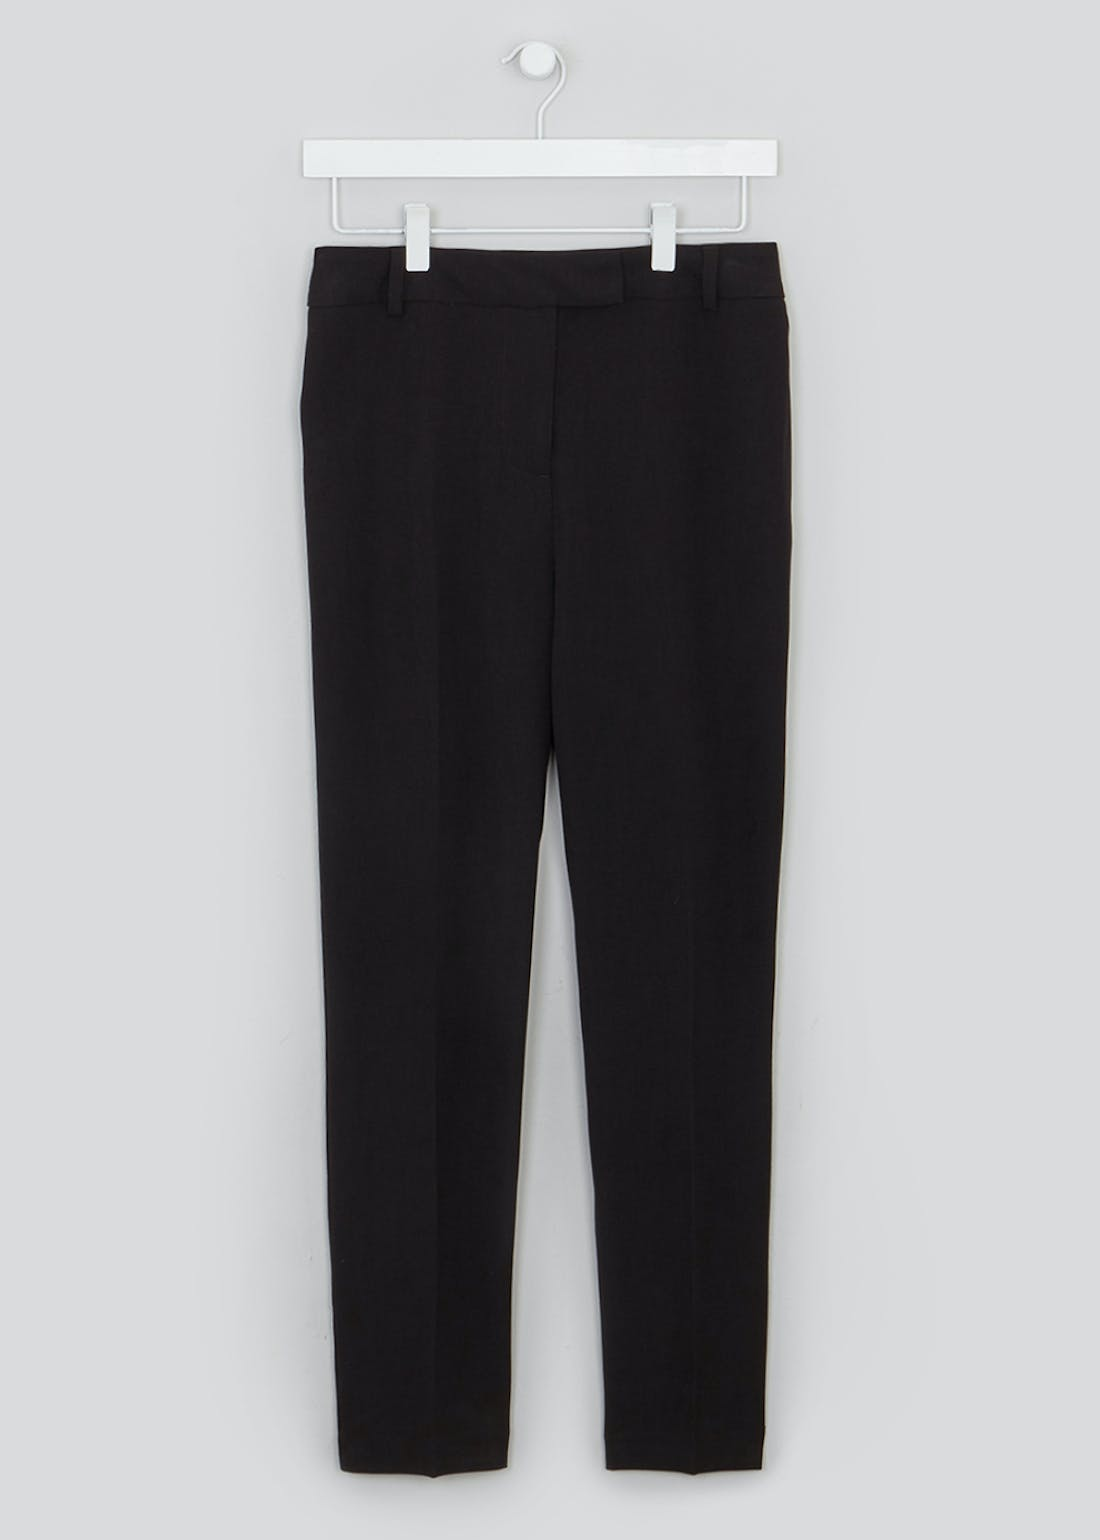 Slim Fit Ankle Grazer Trousers (Long)